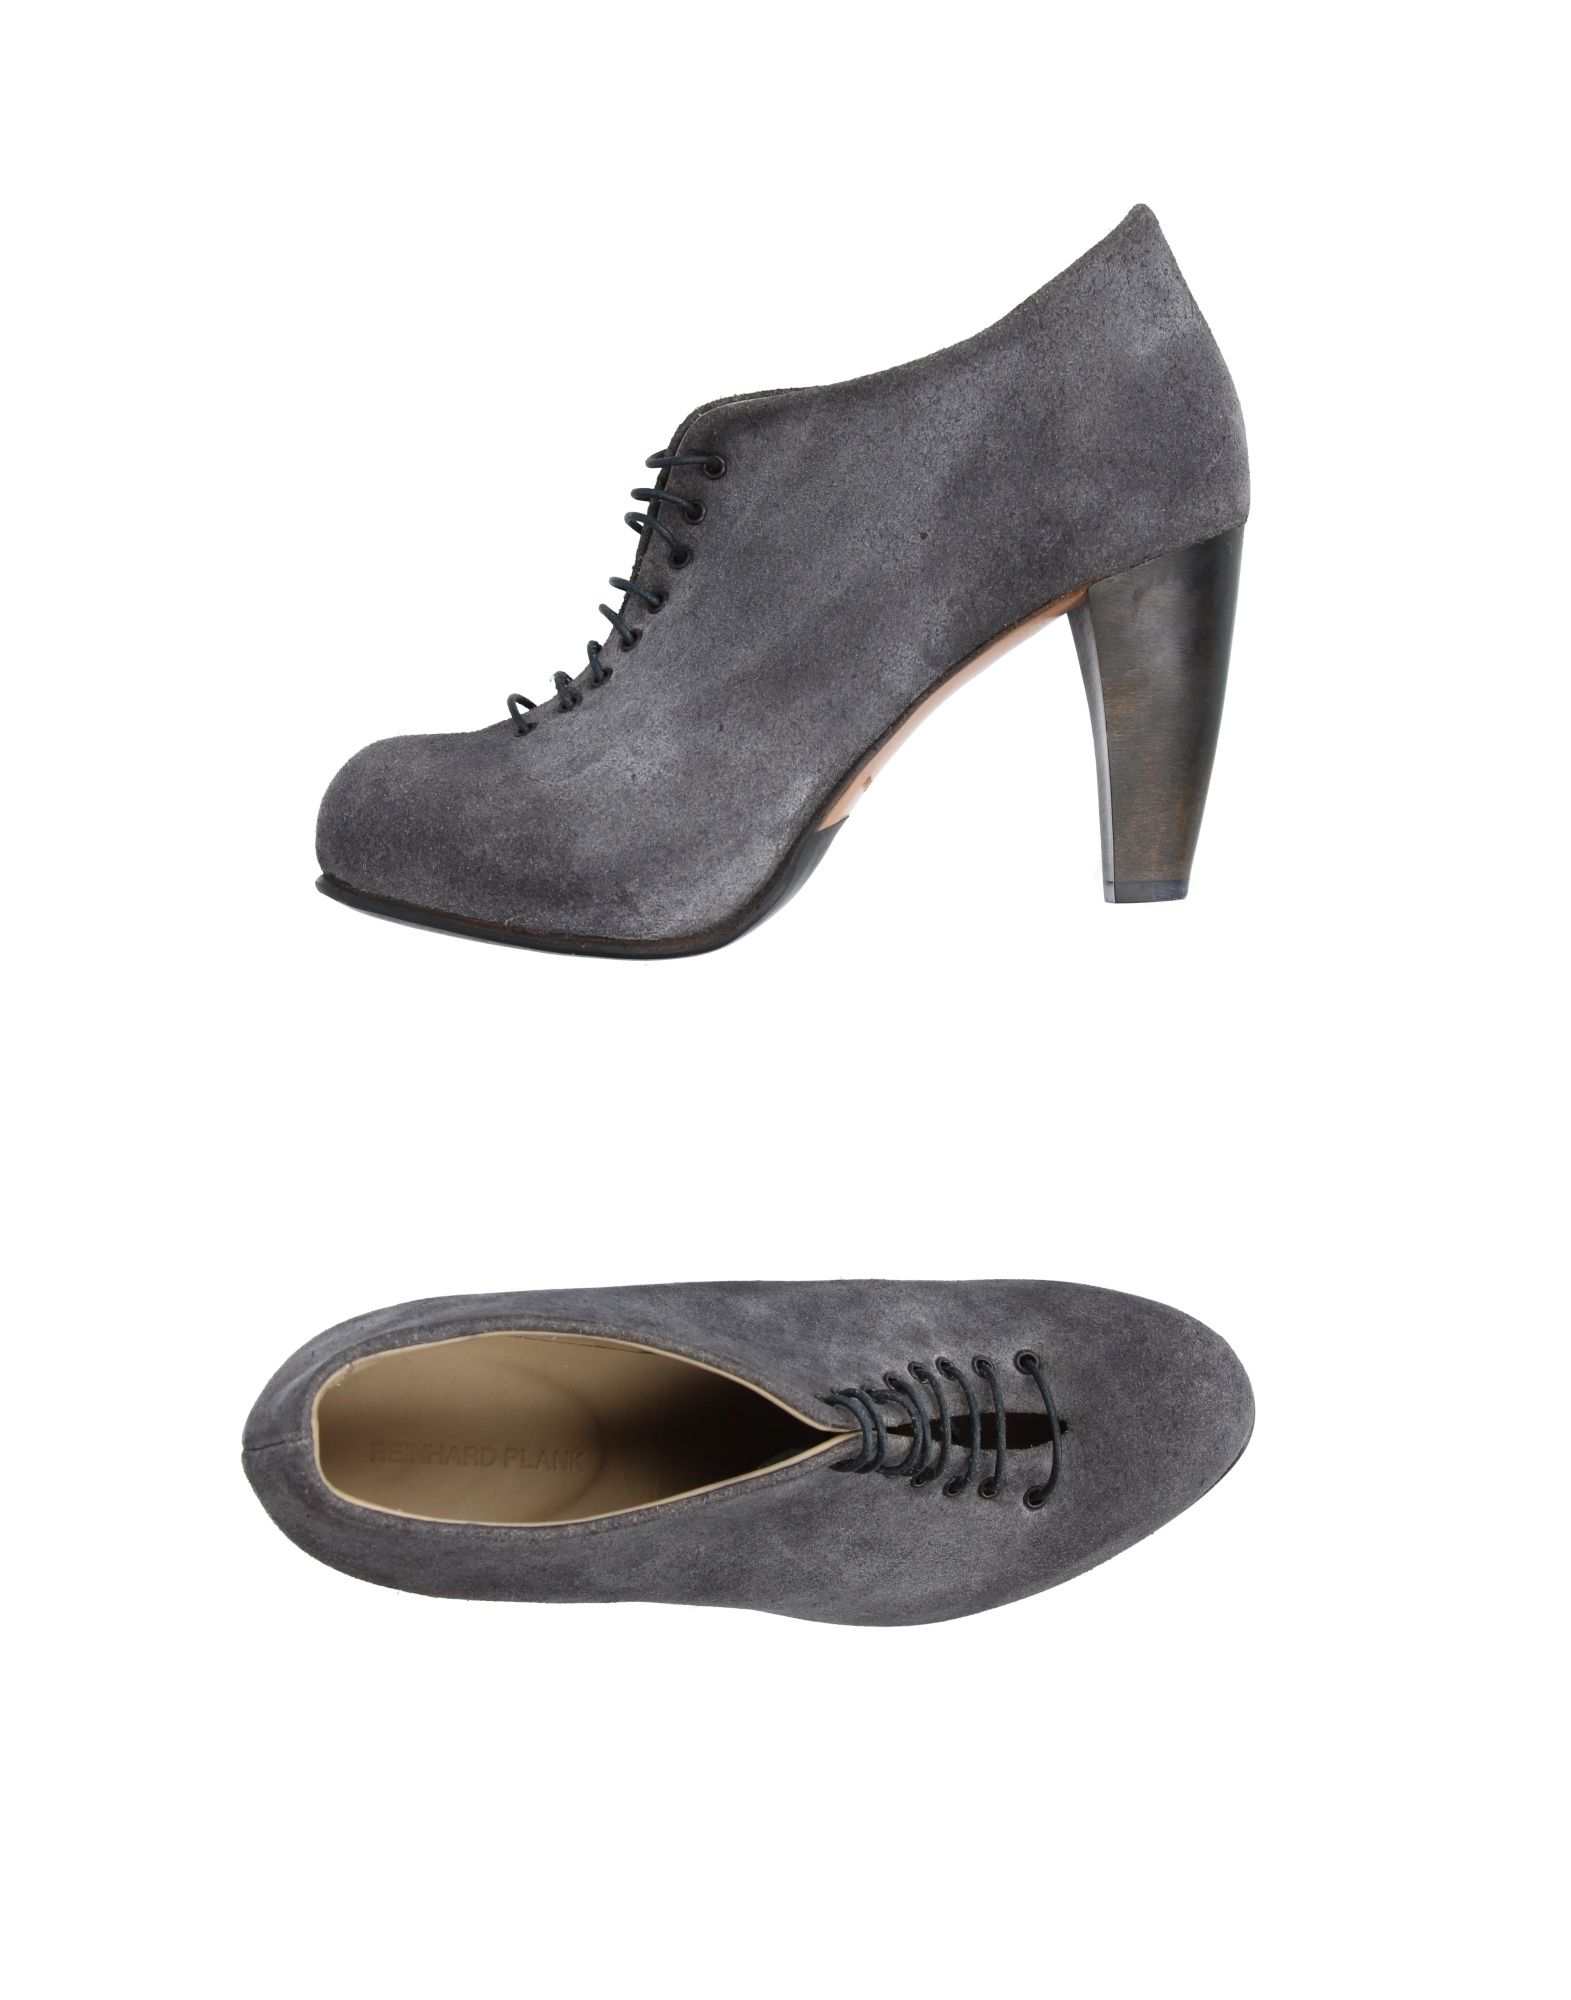 REINHARD PLANK Laced Shoes in Grey